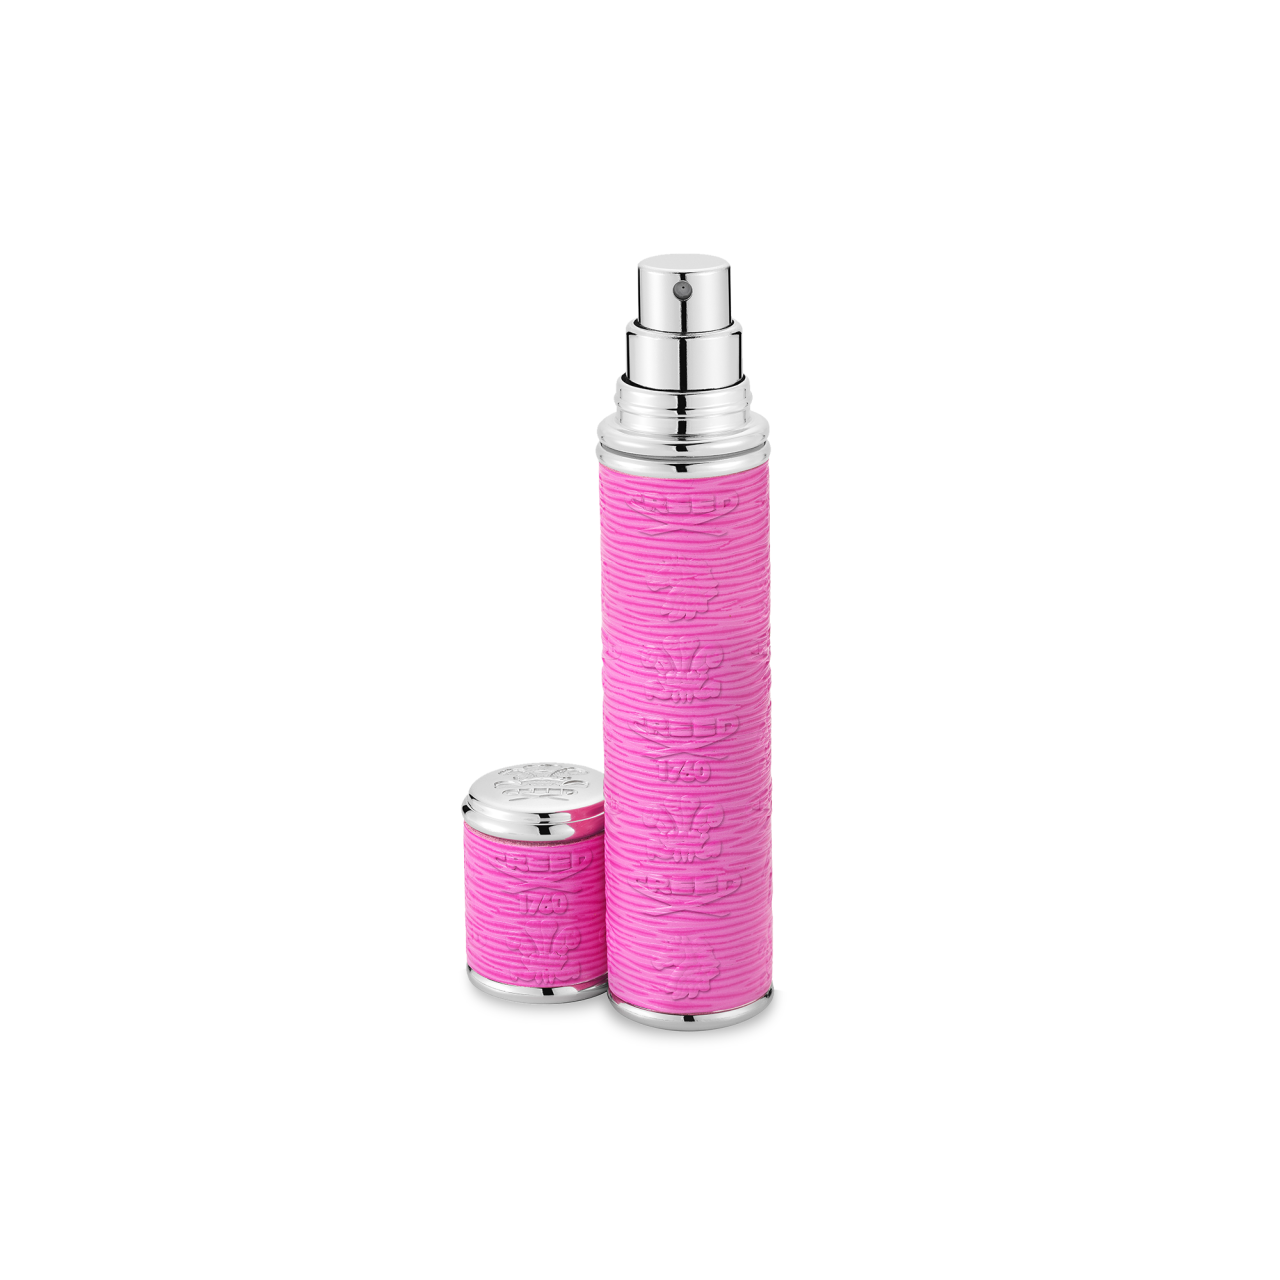 Dark Pink With Silver Trim Pocket Atomizer